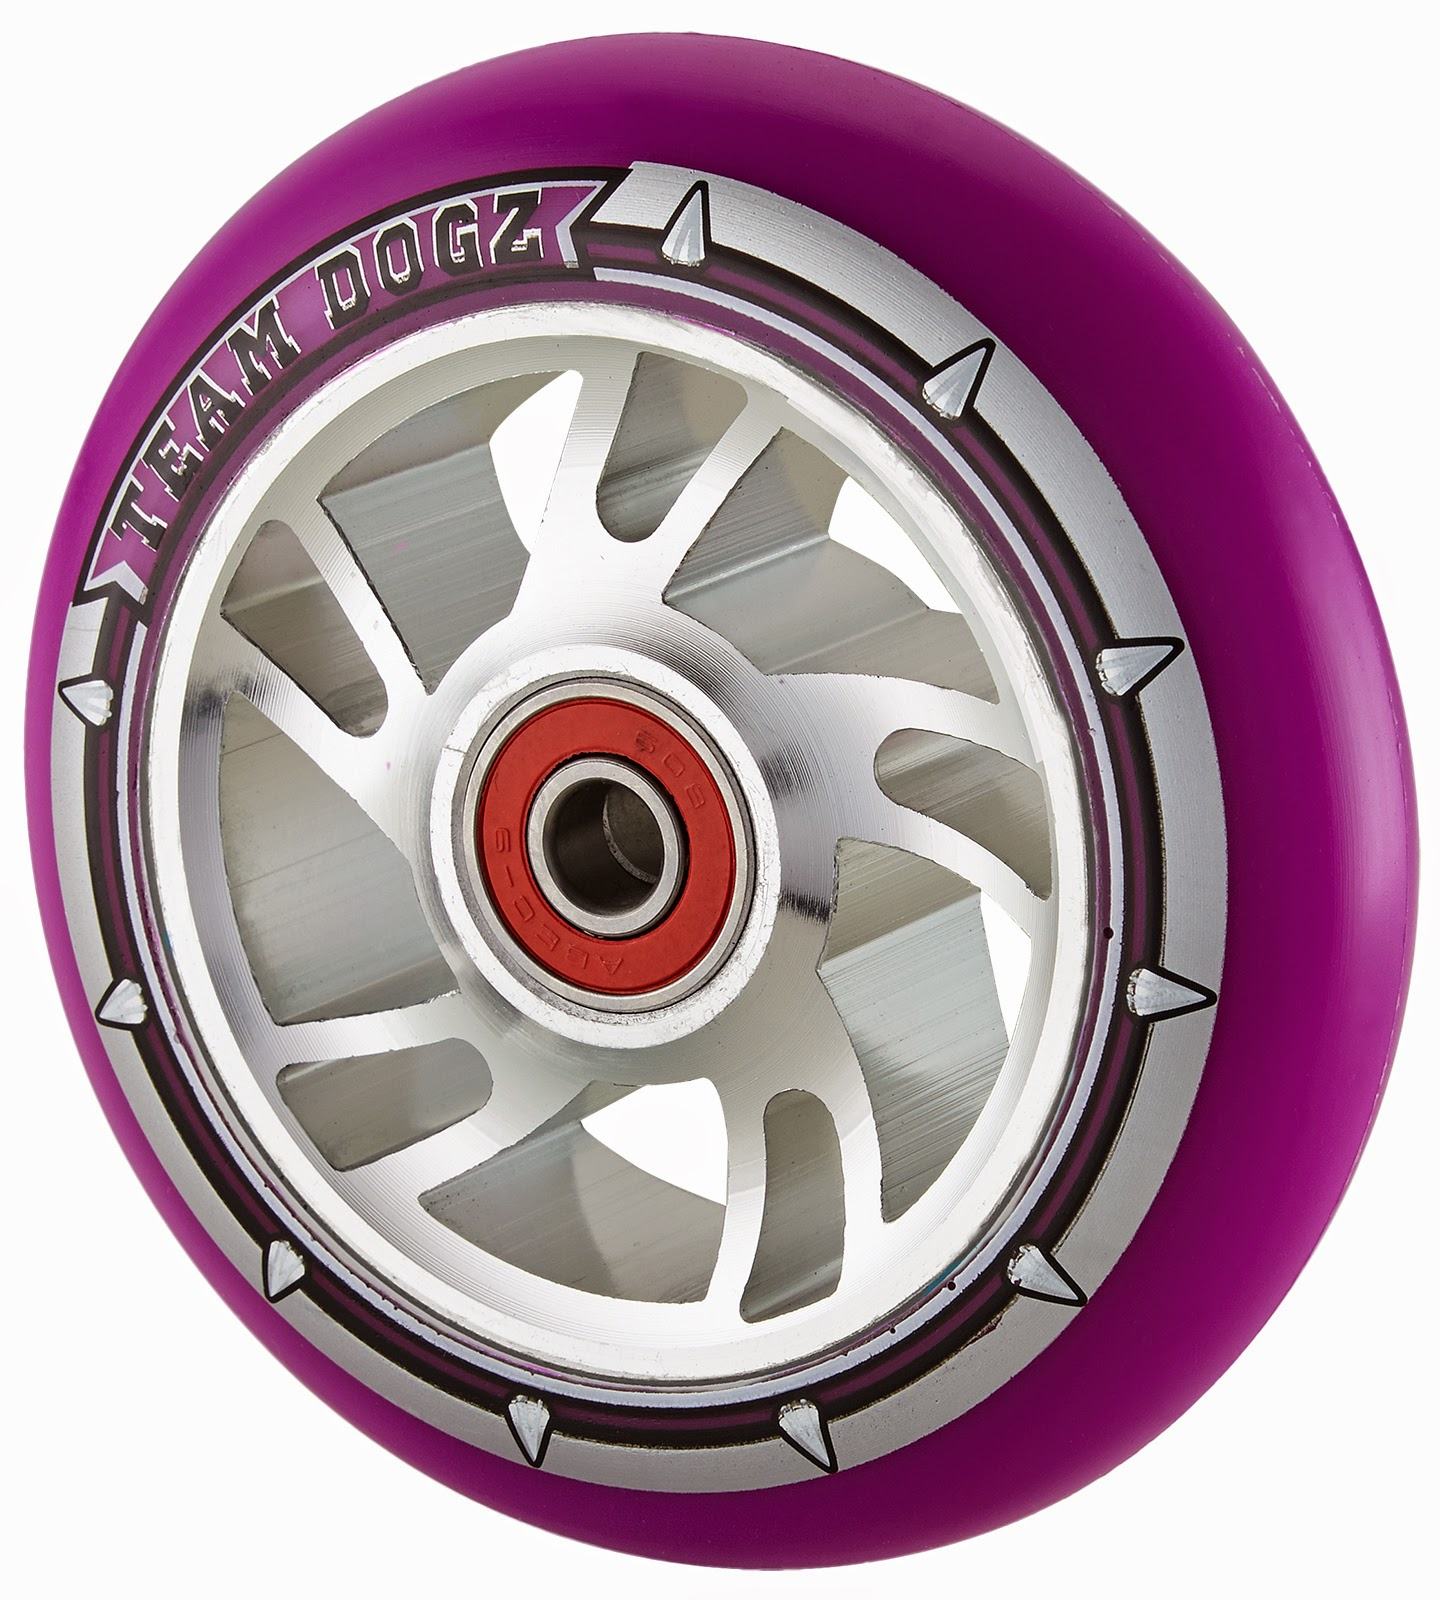 http://www.team-dogz.co.uk/product/100mm-alloy-purple-silver